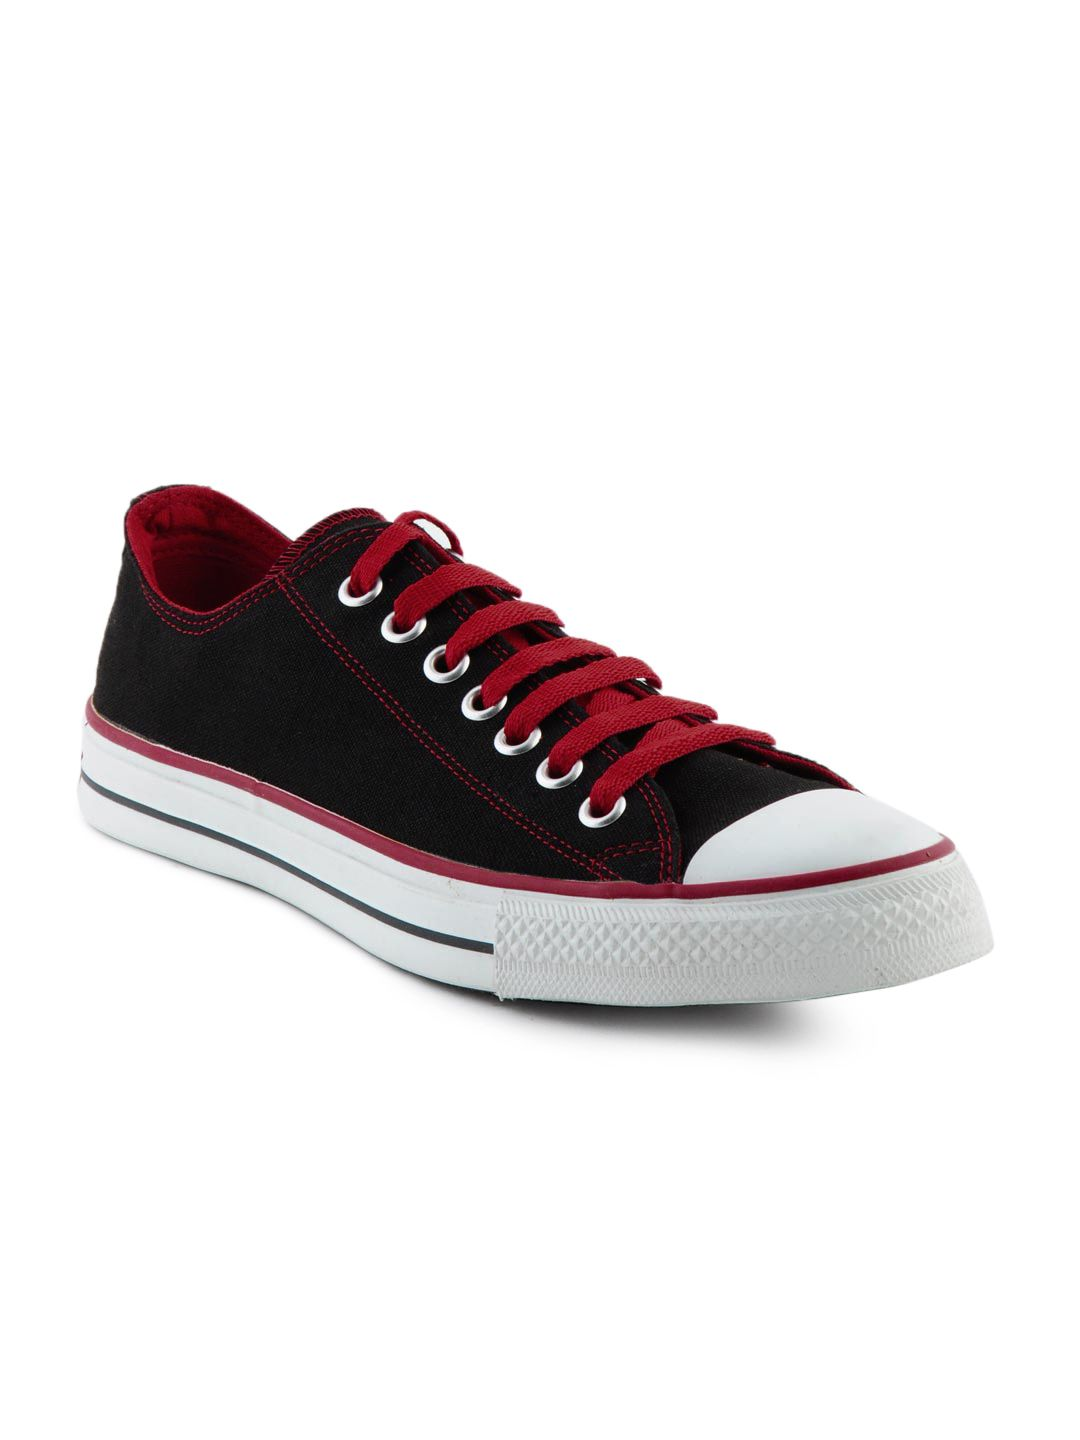 f9c85f9fd985b8 Chuck Taylor  Converse Black and Red  Sneakers  Myntra.com ...